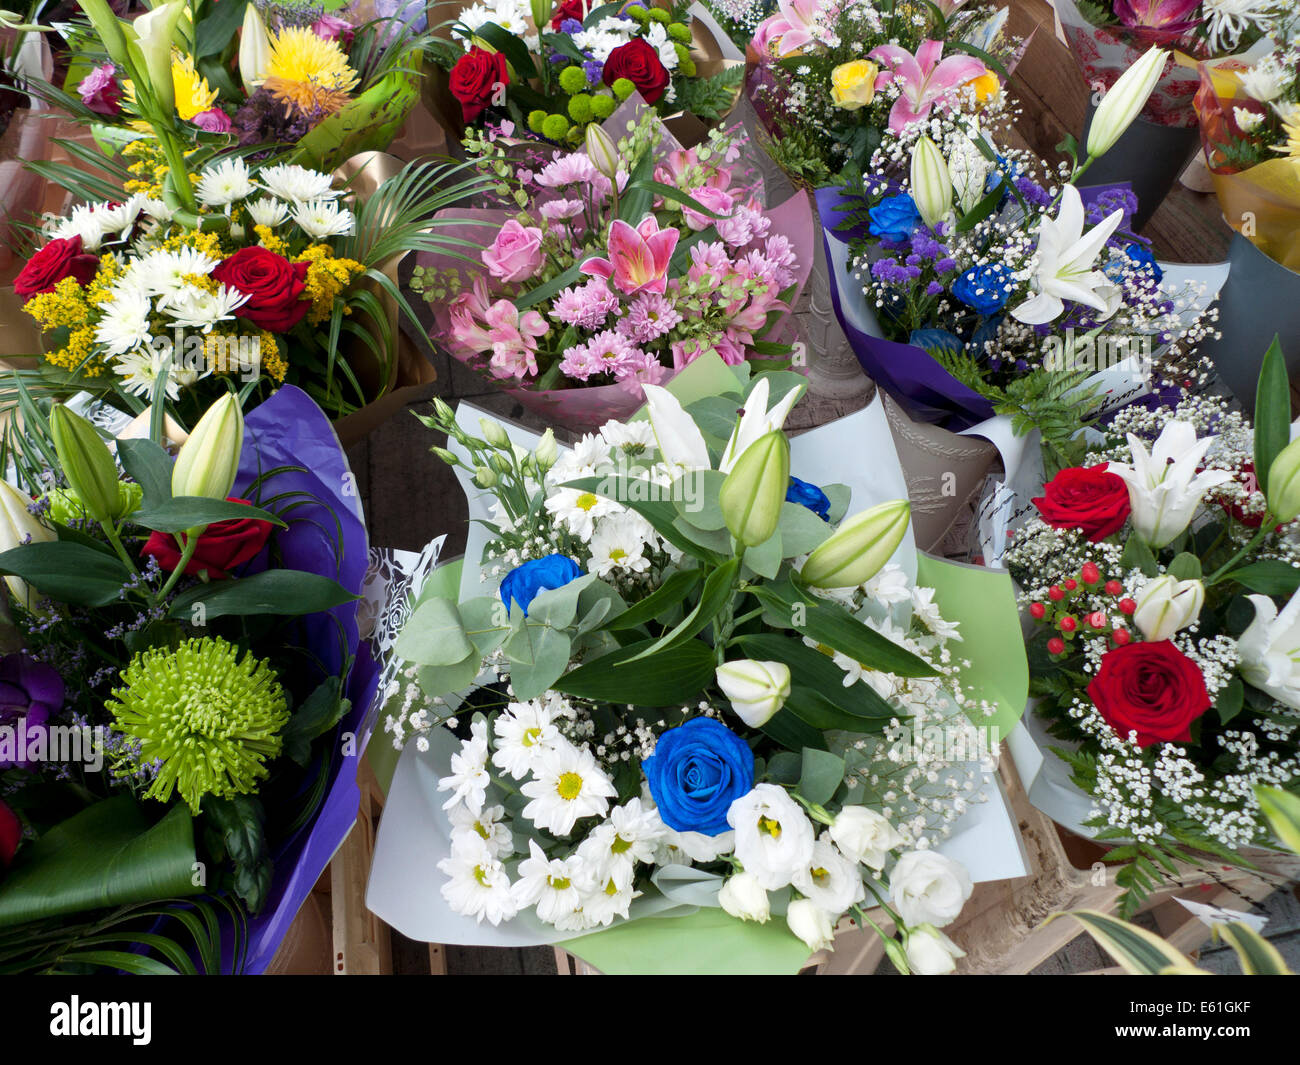 Mixed Summer Flower Bouquet With Roses Lilies